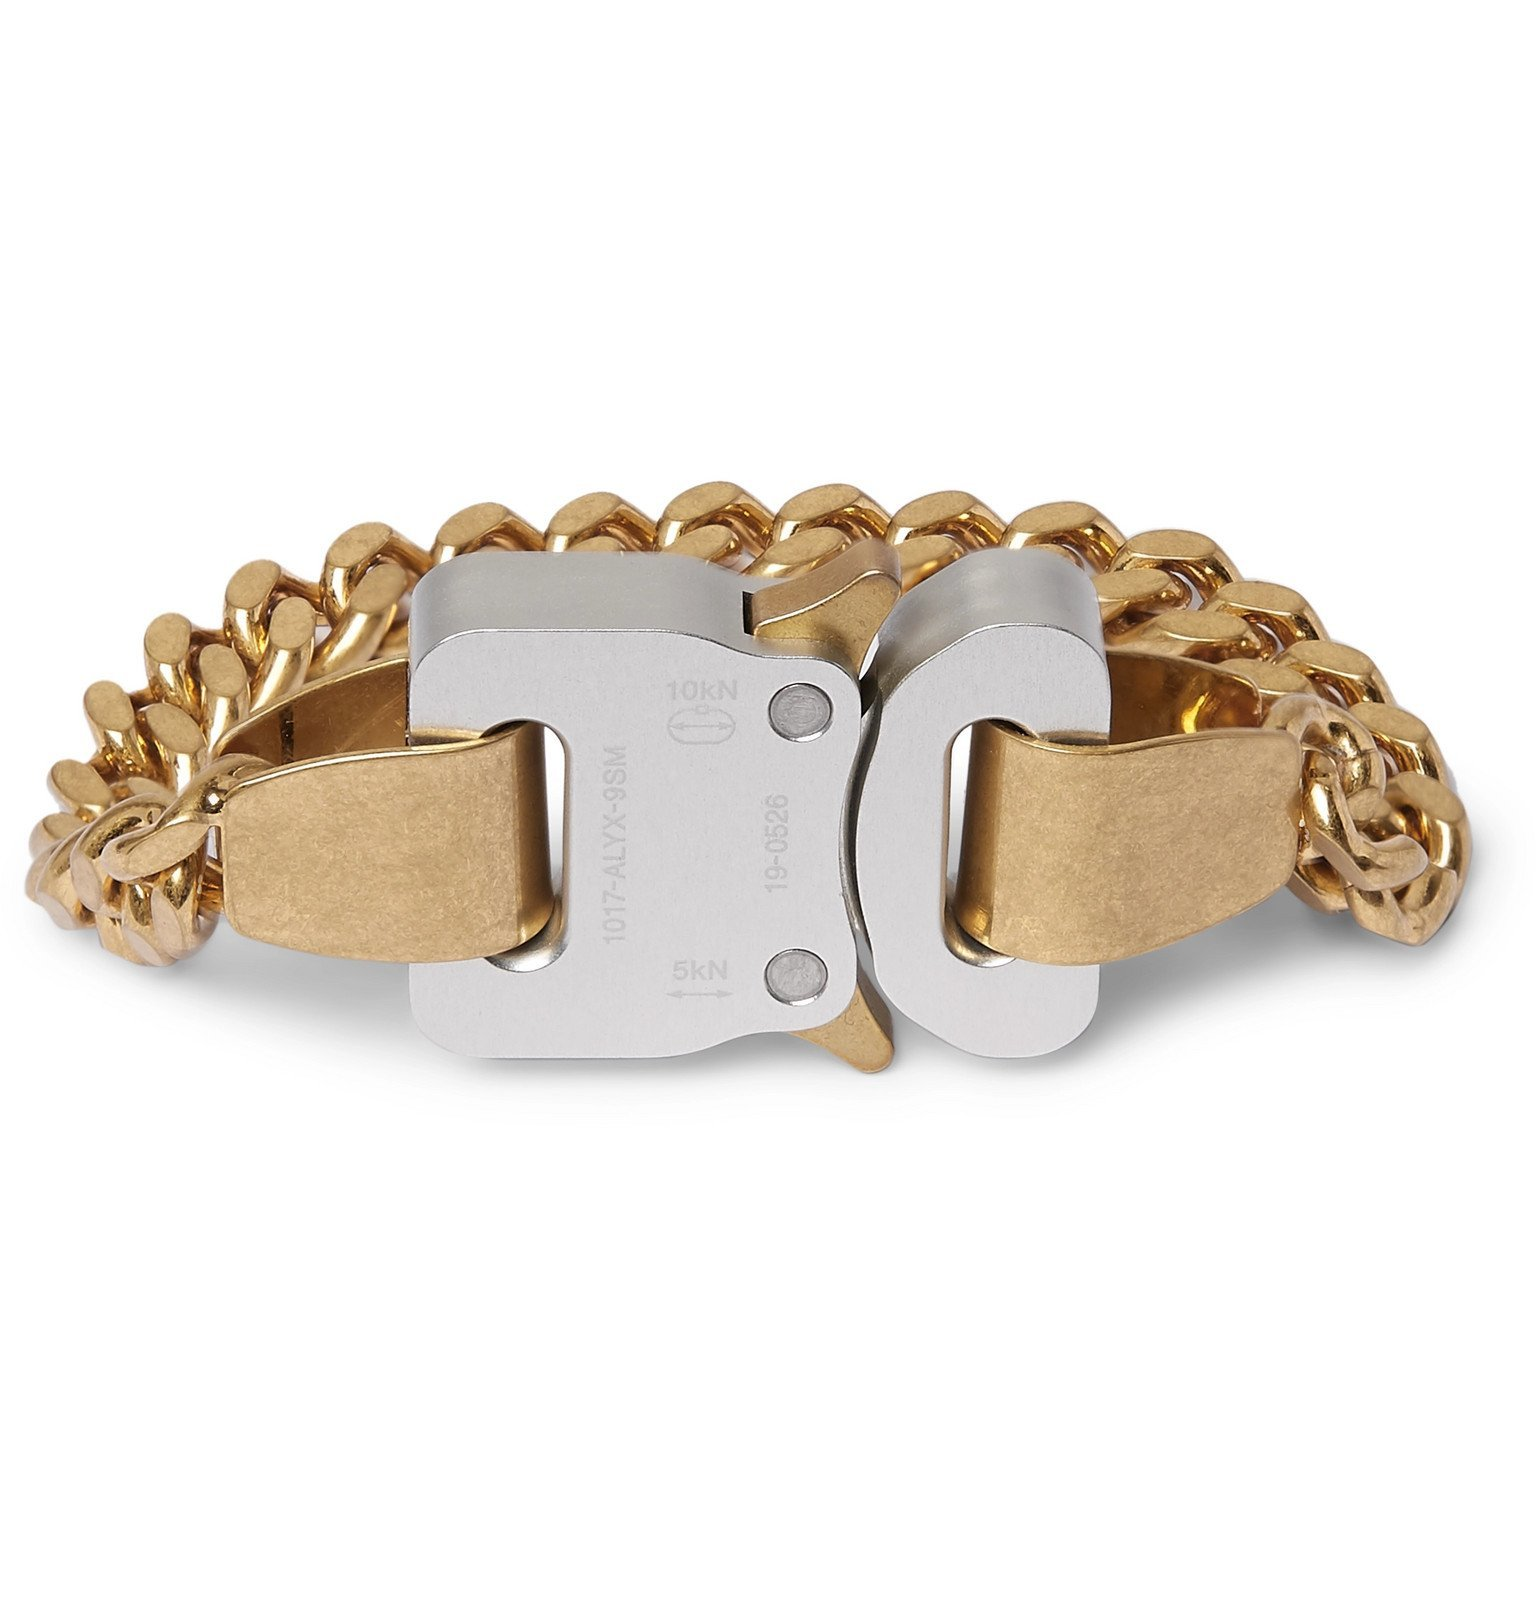 Photo: 1017 ALYX 9SM - Gold and Silver-Tone Bracelet - Gold